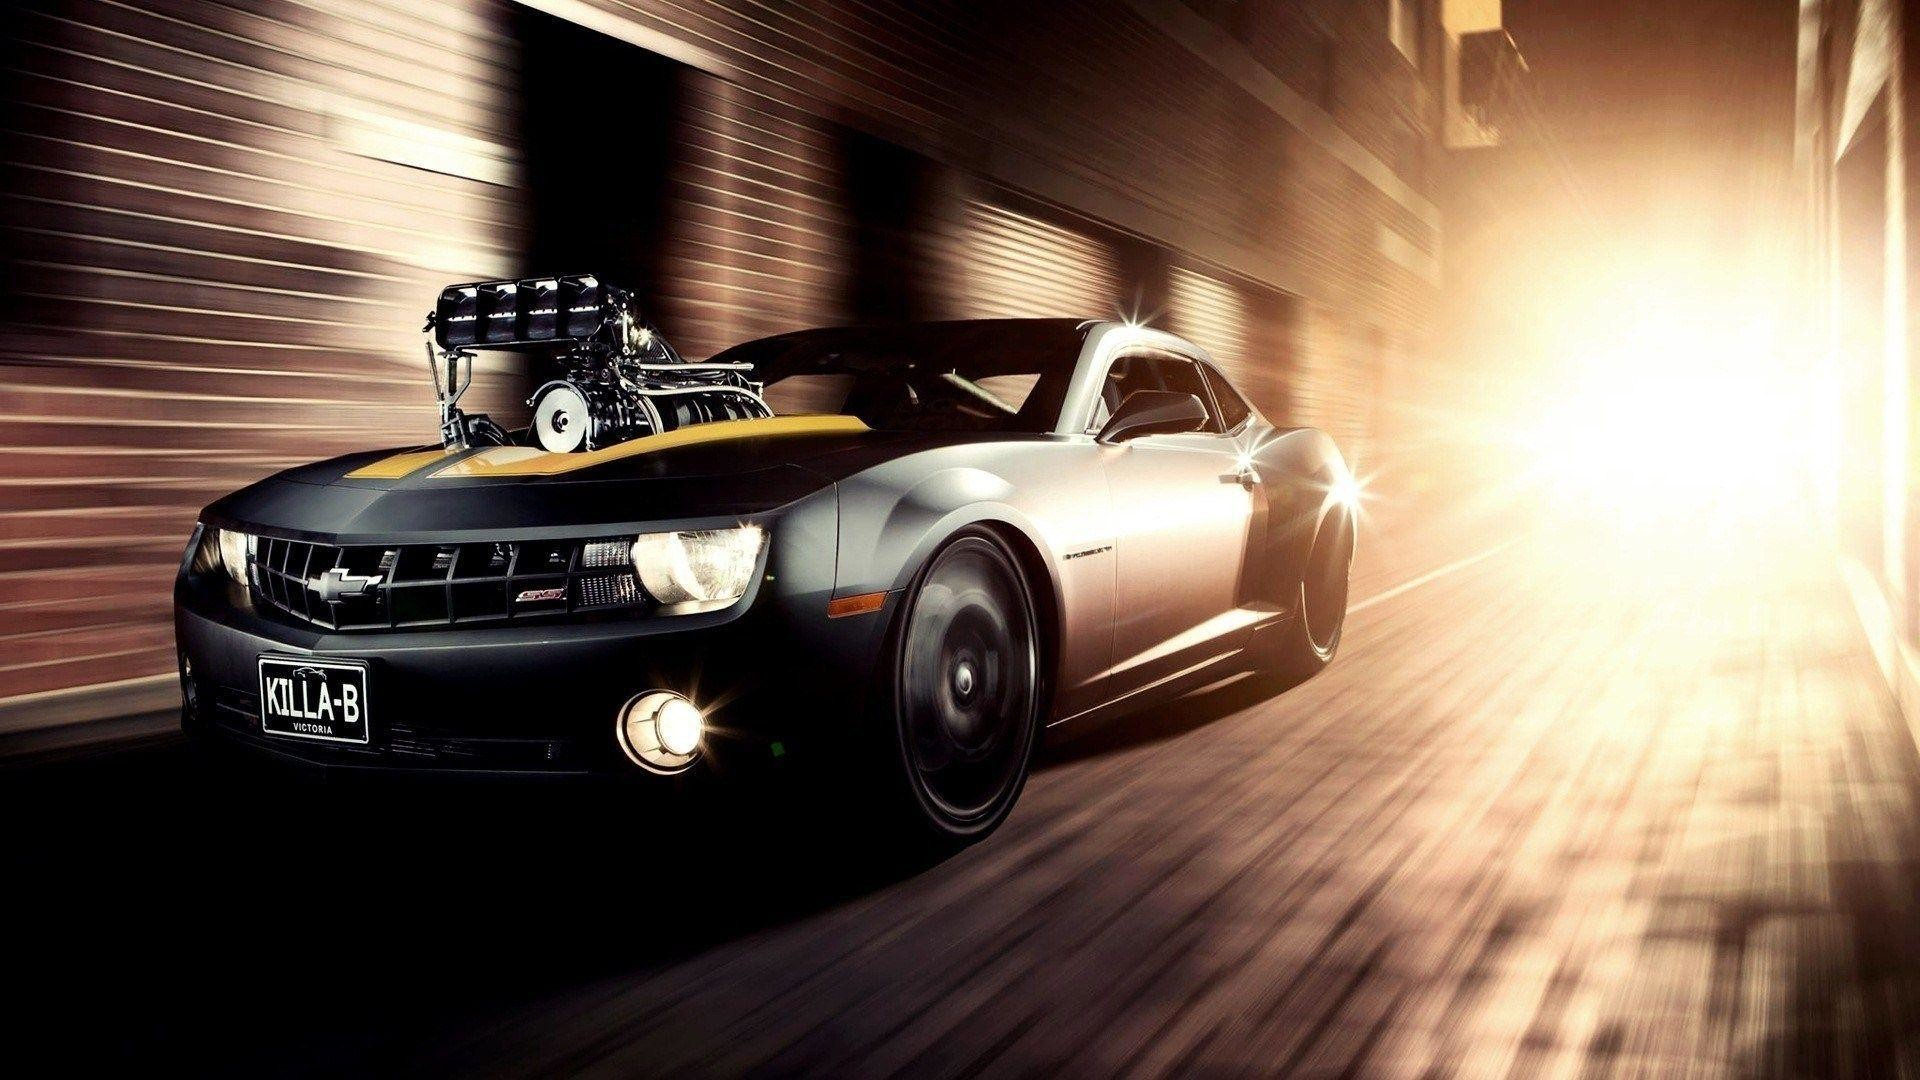 Muscle Cars in 1920x1080 Wallpapers (65+ images)